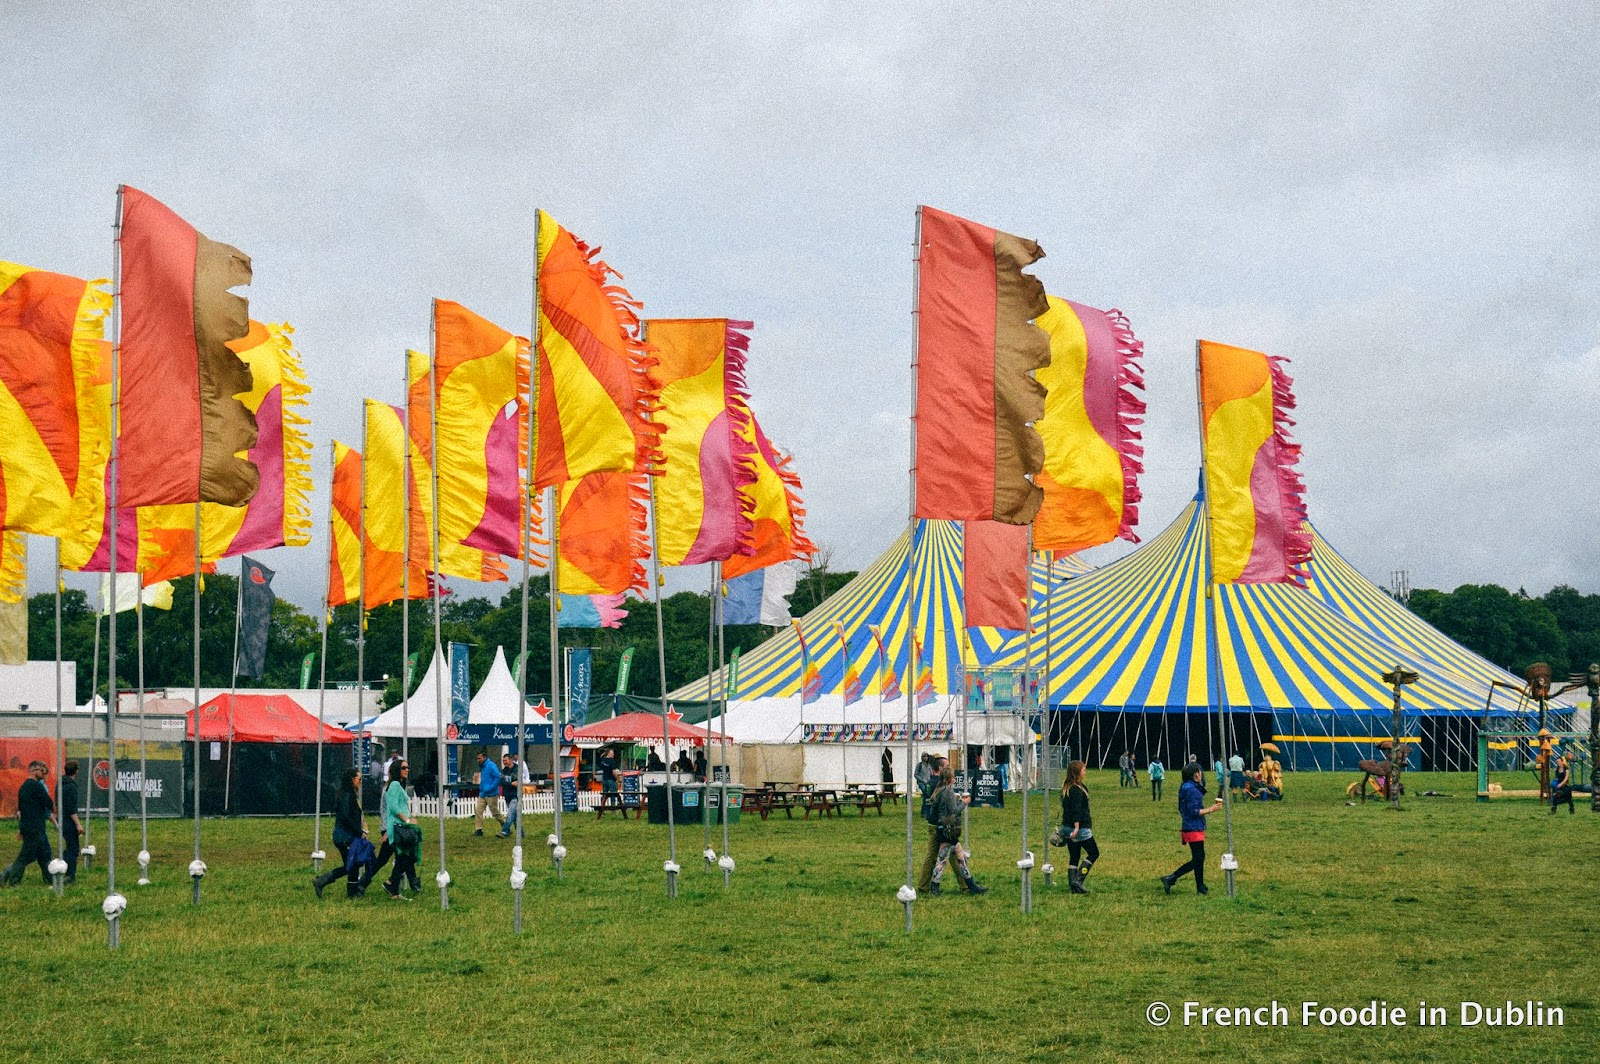 Electric Picnic 2014: What a